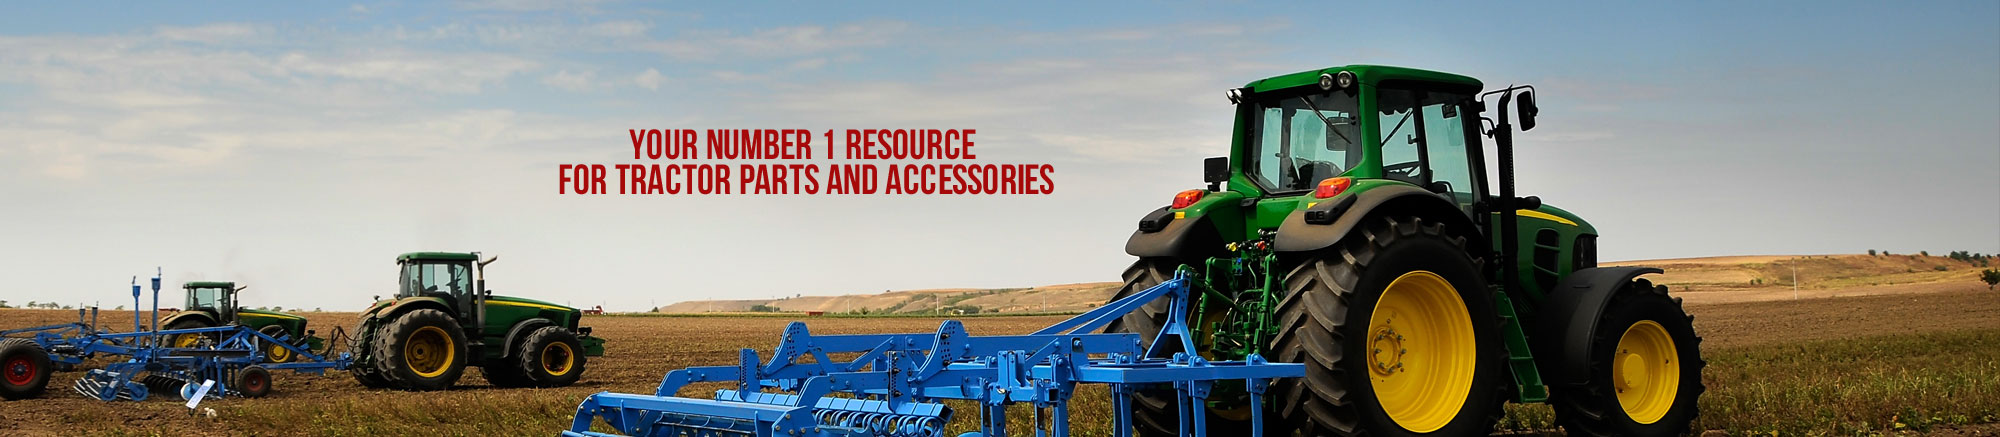 YOUR NUMBER 1 RESOURCE 